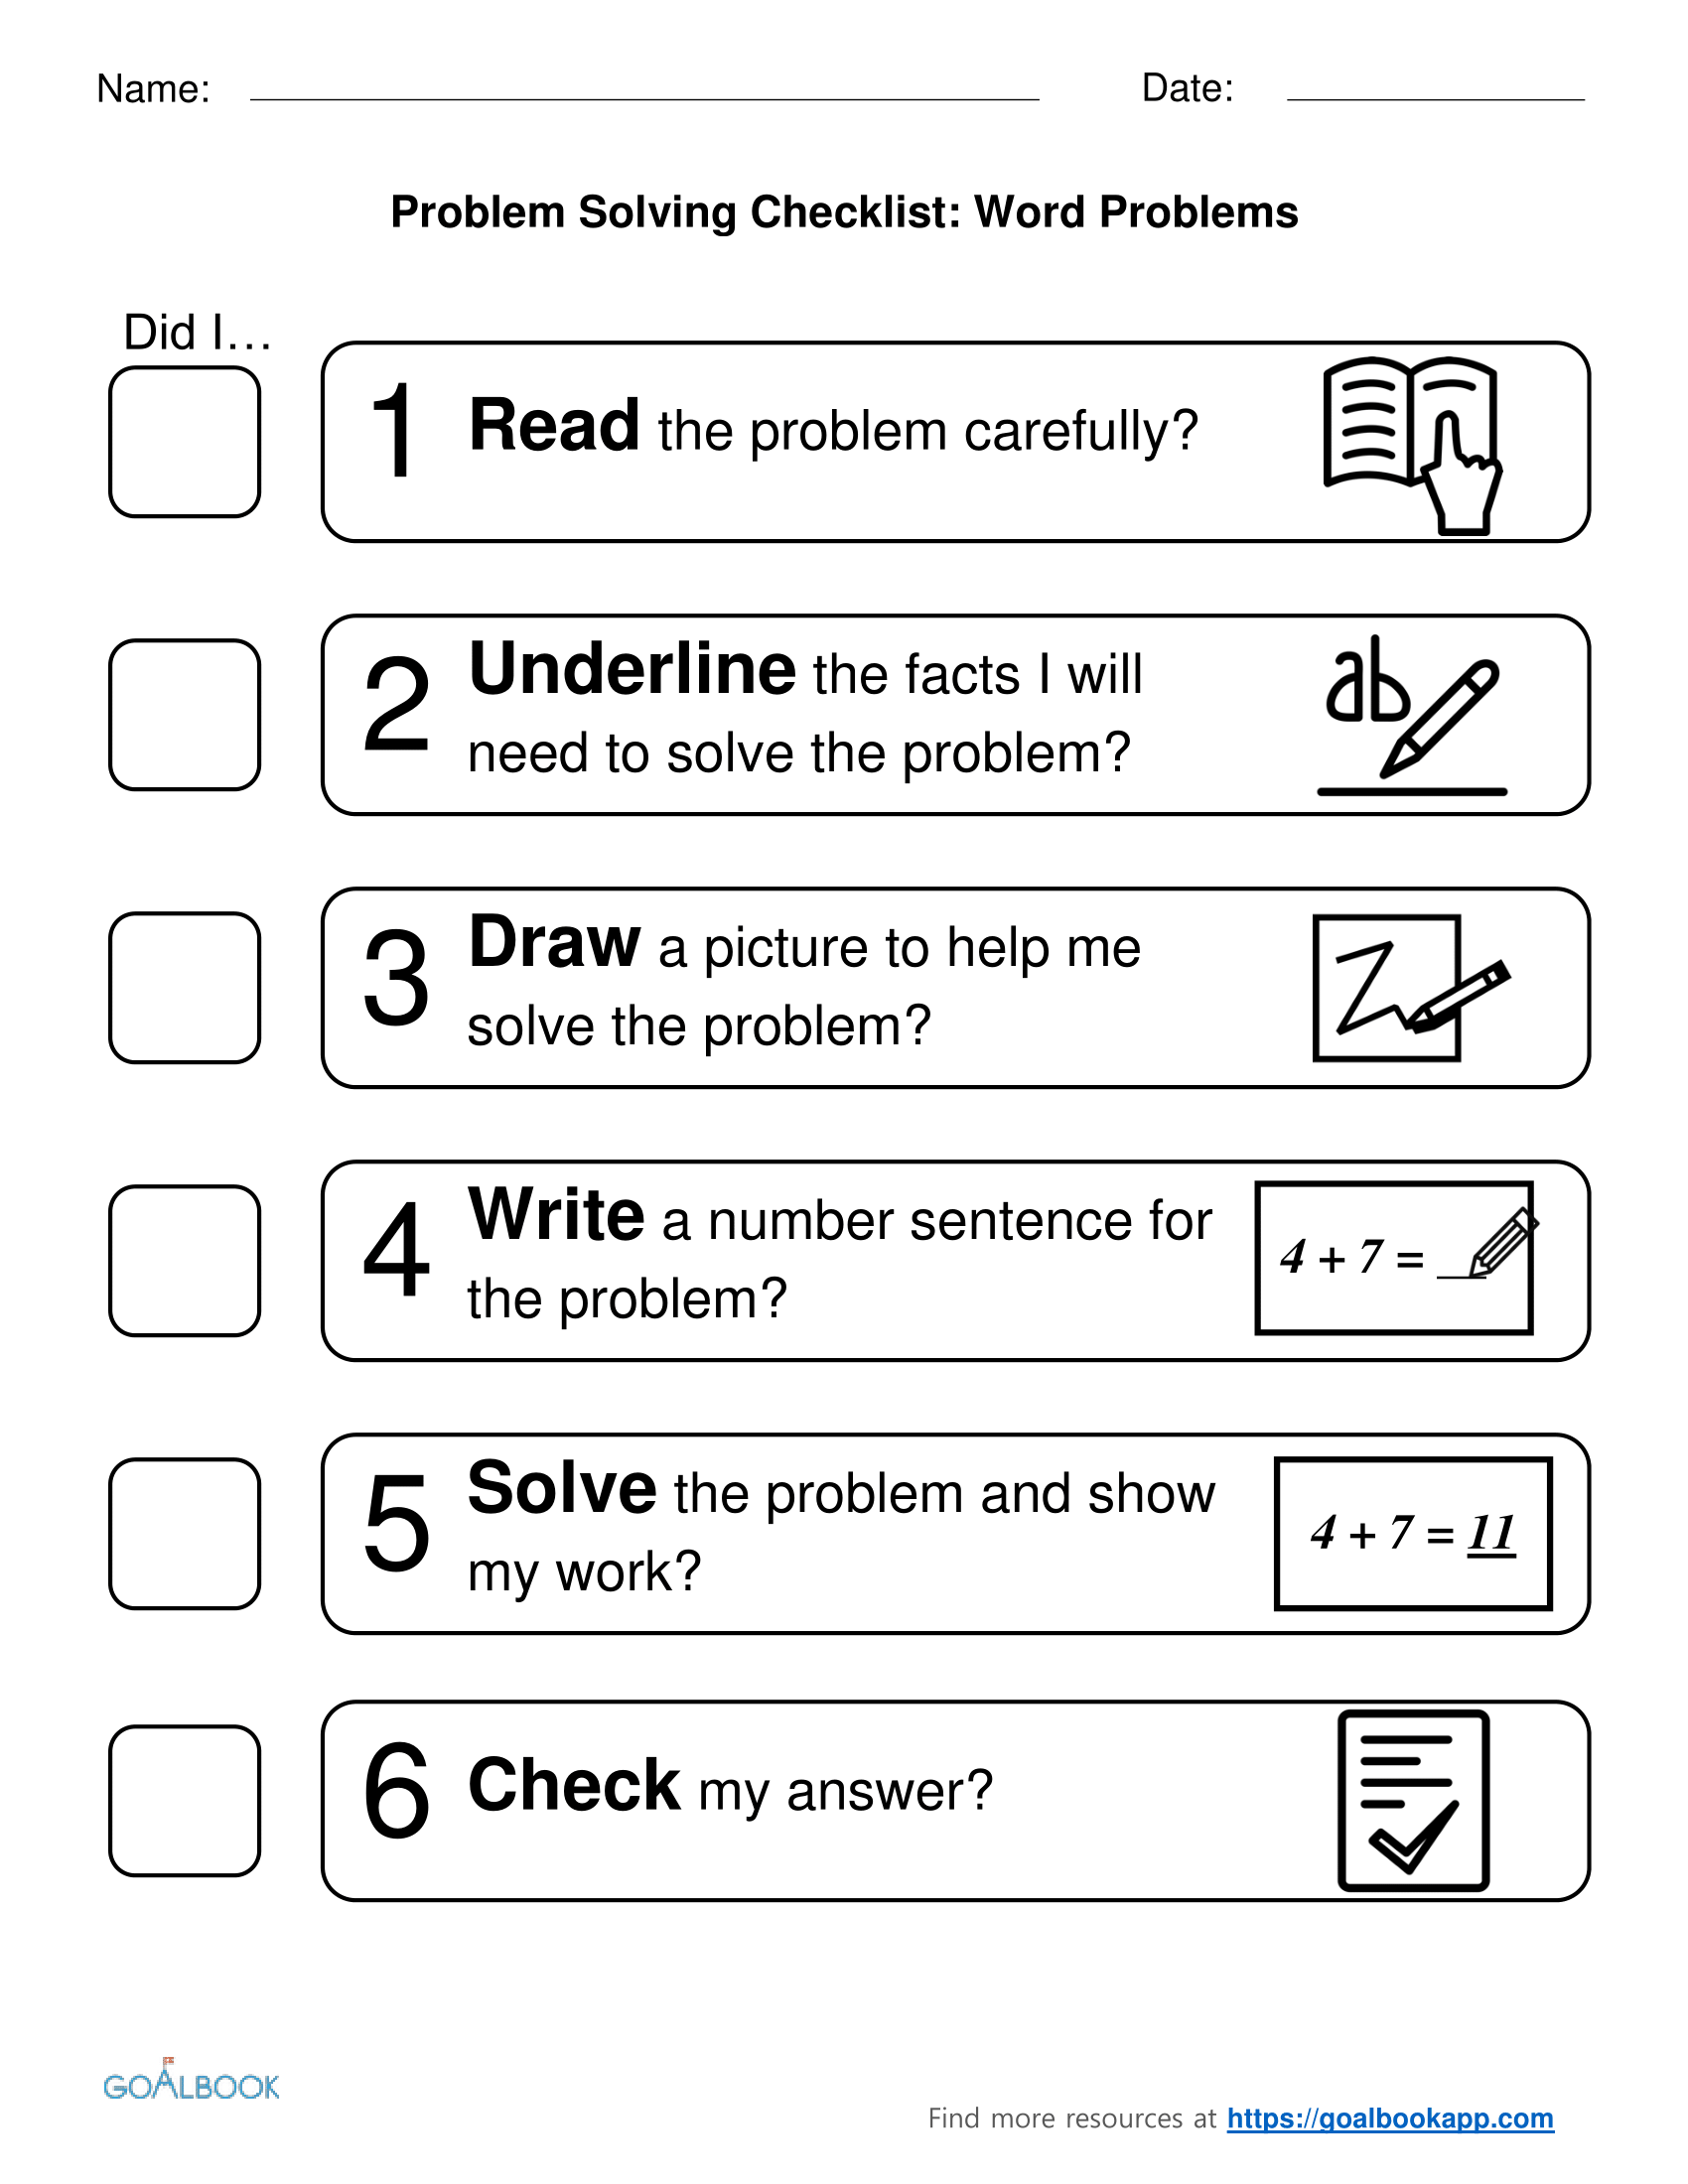 Worksheet Solving Word Problem Wosenly Free Worksheet – Two-step Word Problems Worksheet